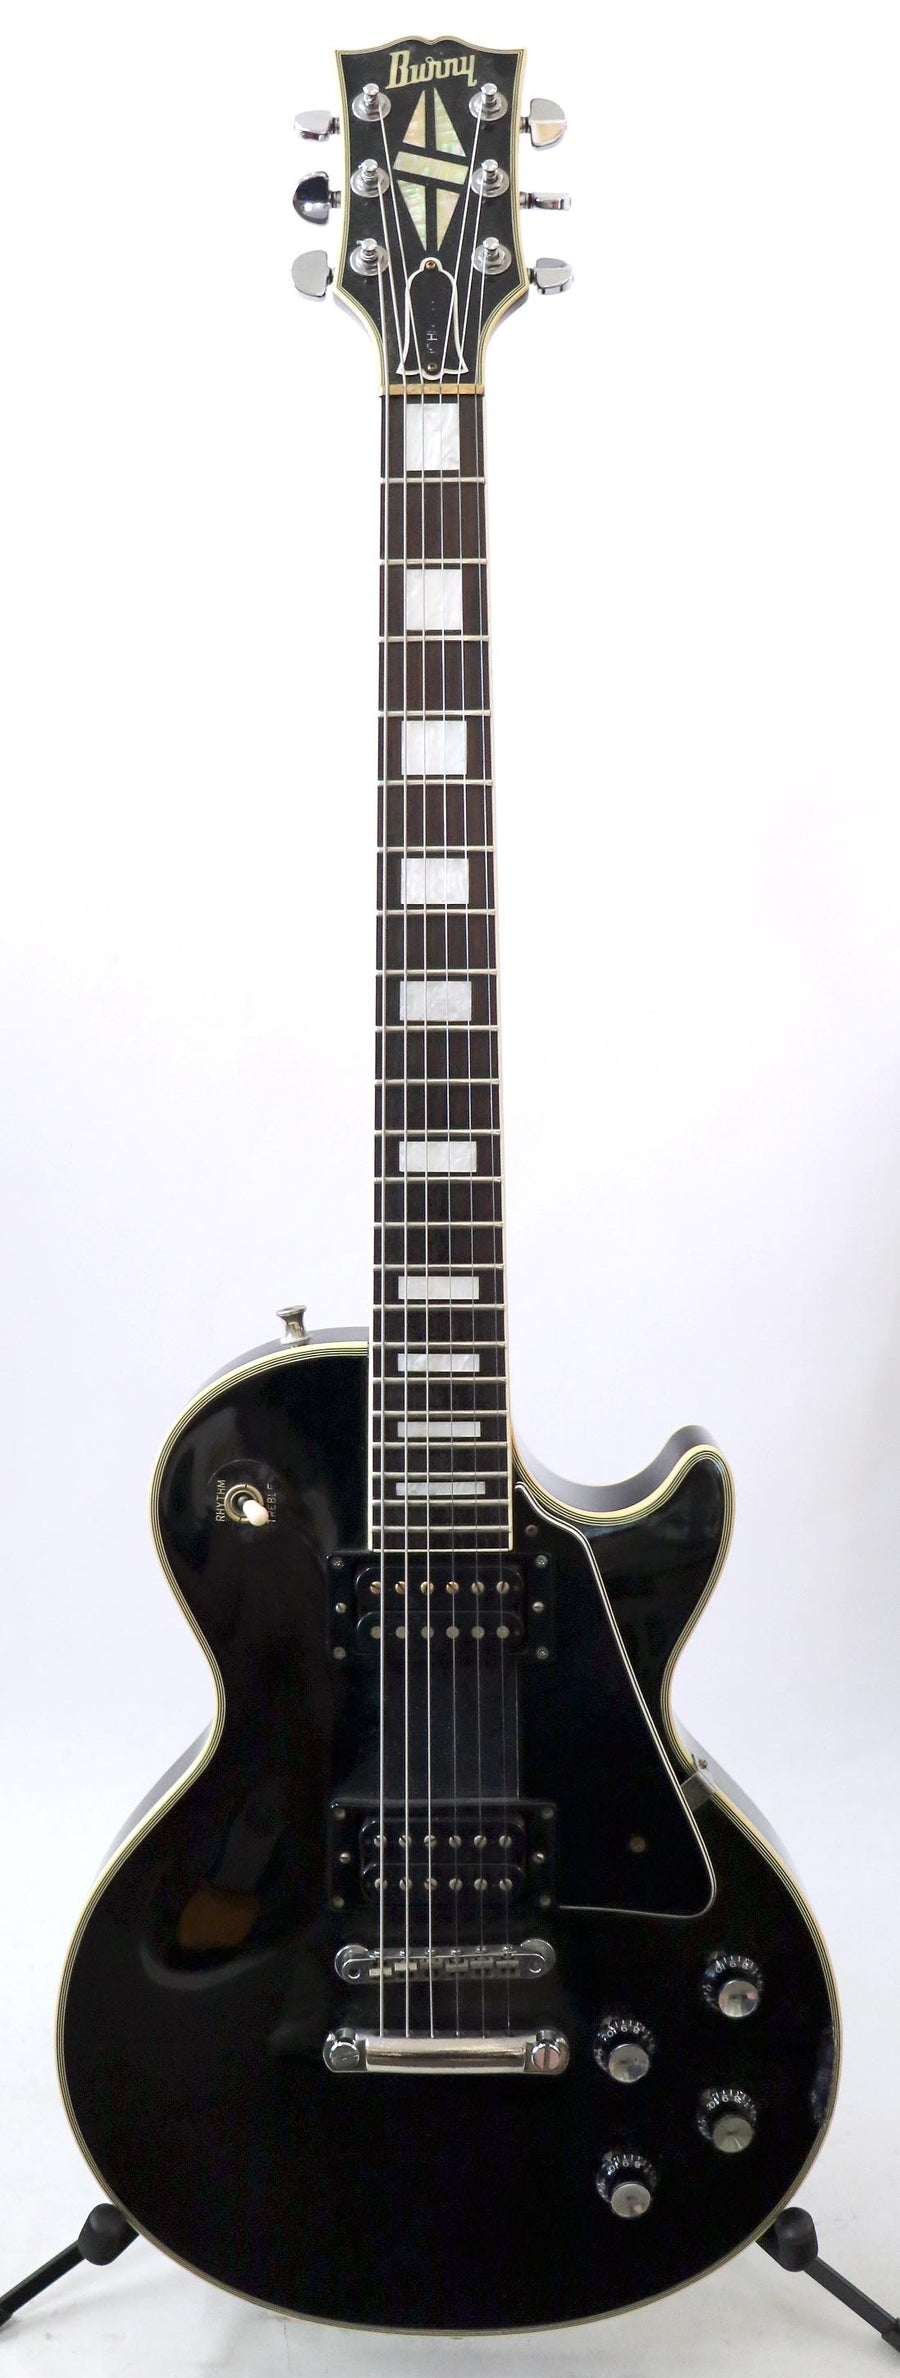 Burny John Sykes Les Paul Custom LC-75JS Japan